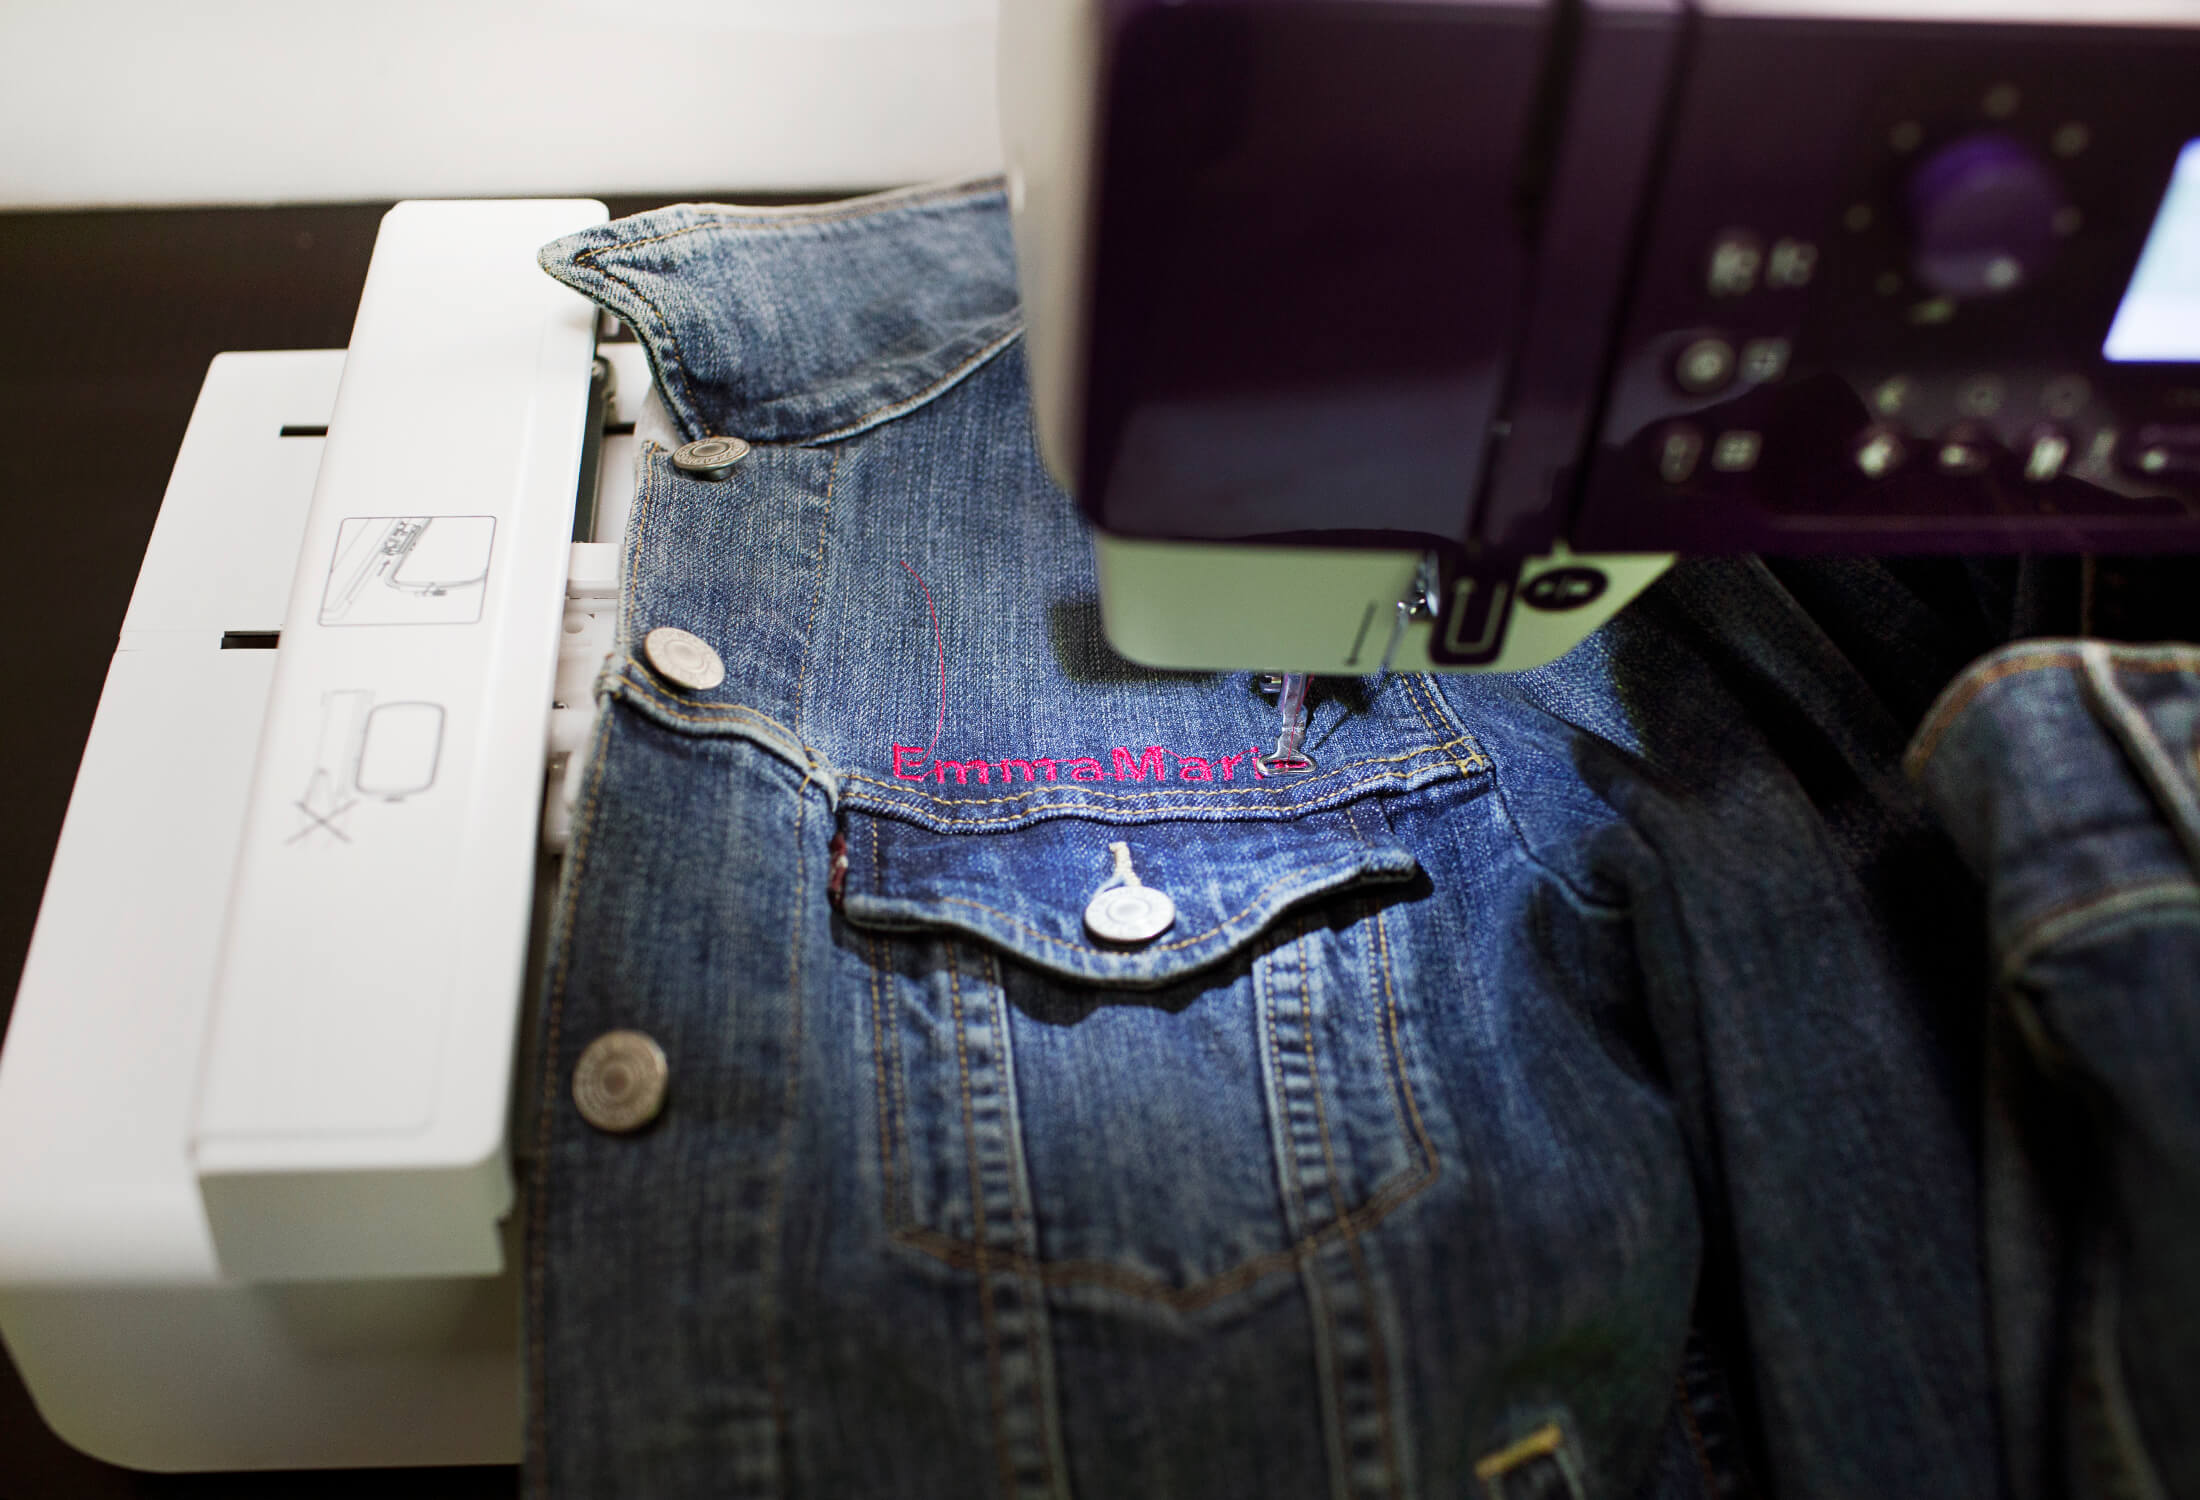 How to add your name to a denim jacket